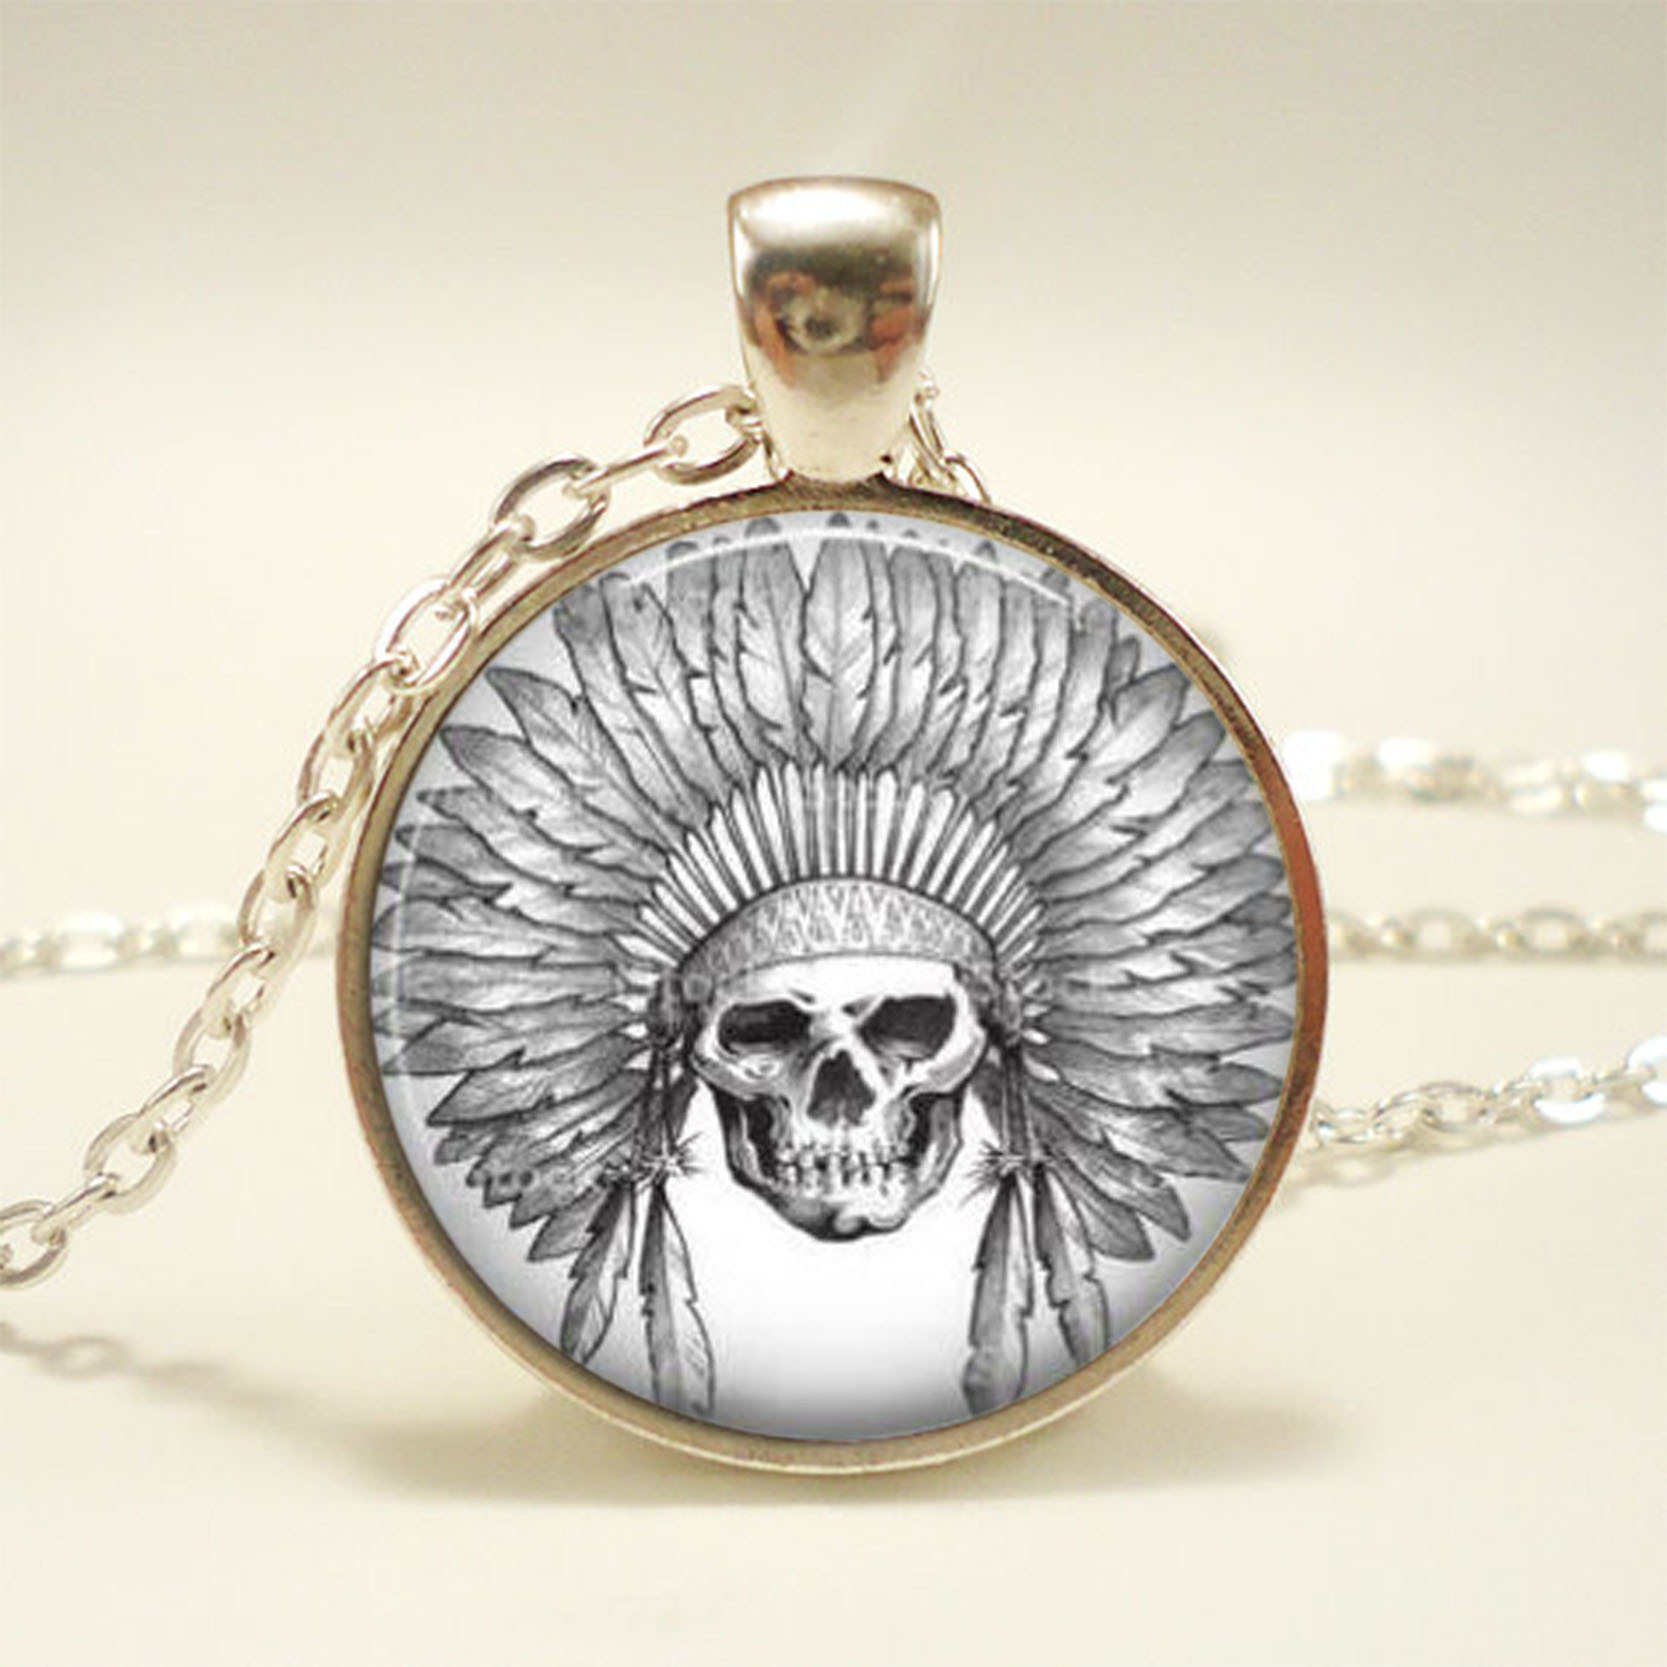 Vintage Skull Flower Photo Cabochon Glass Silver Chain Pendant Necklace